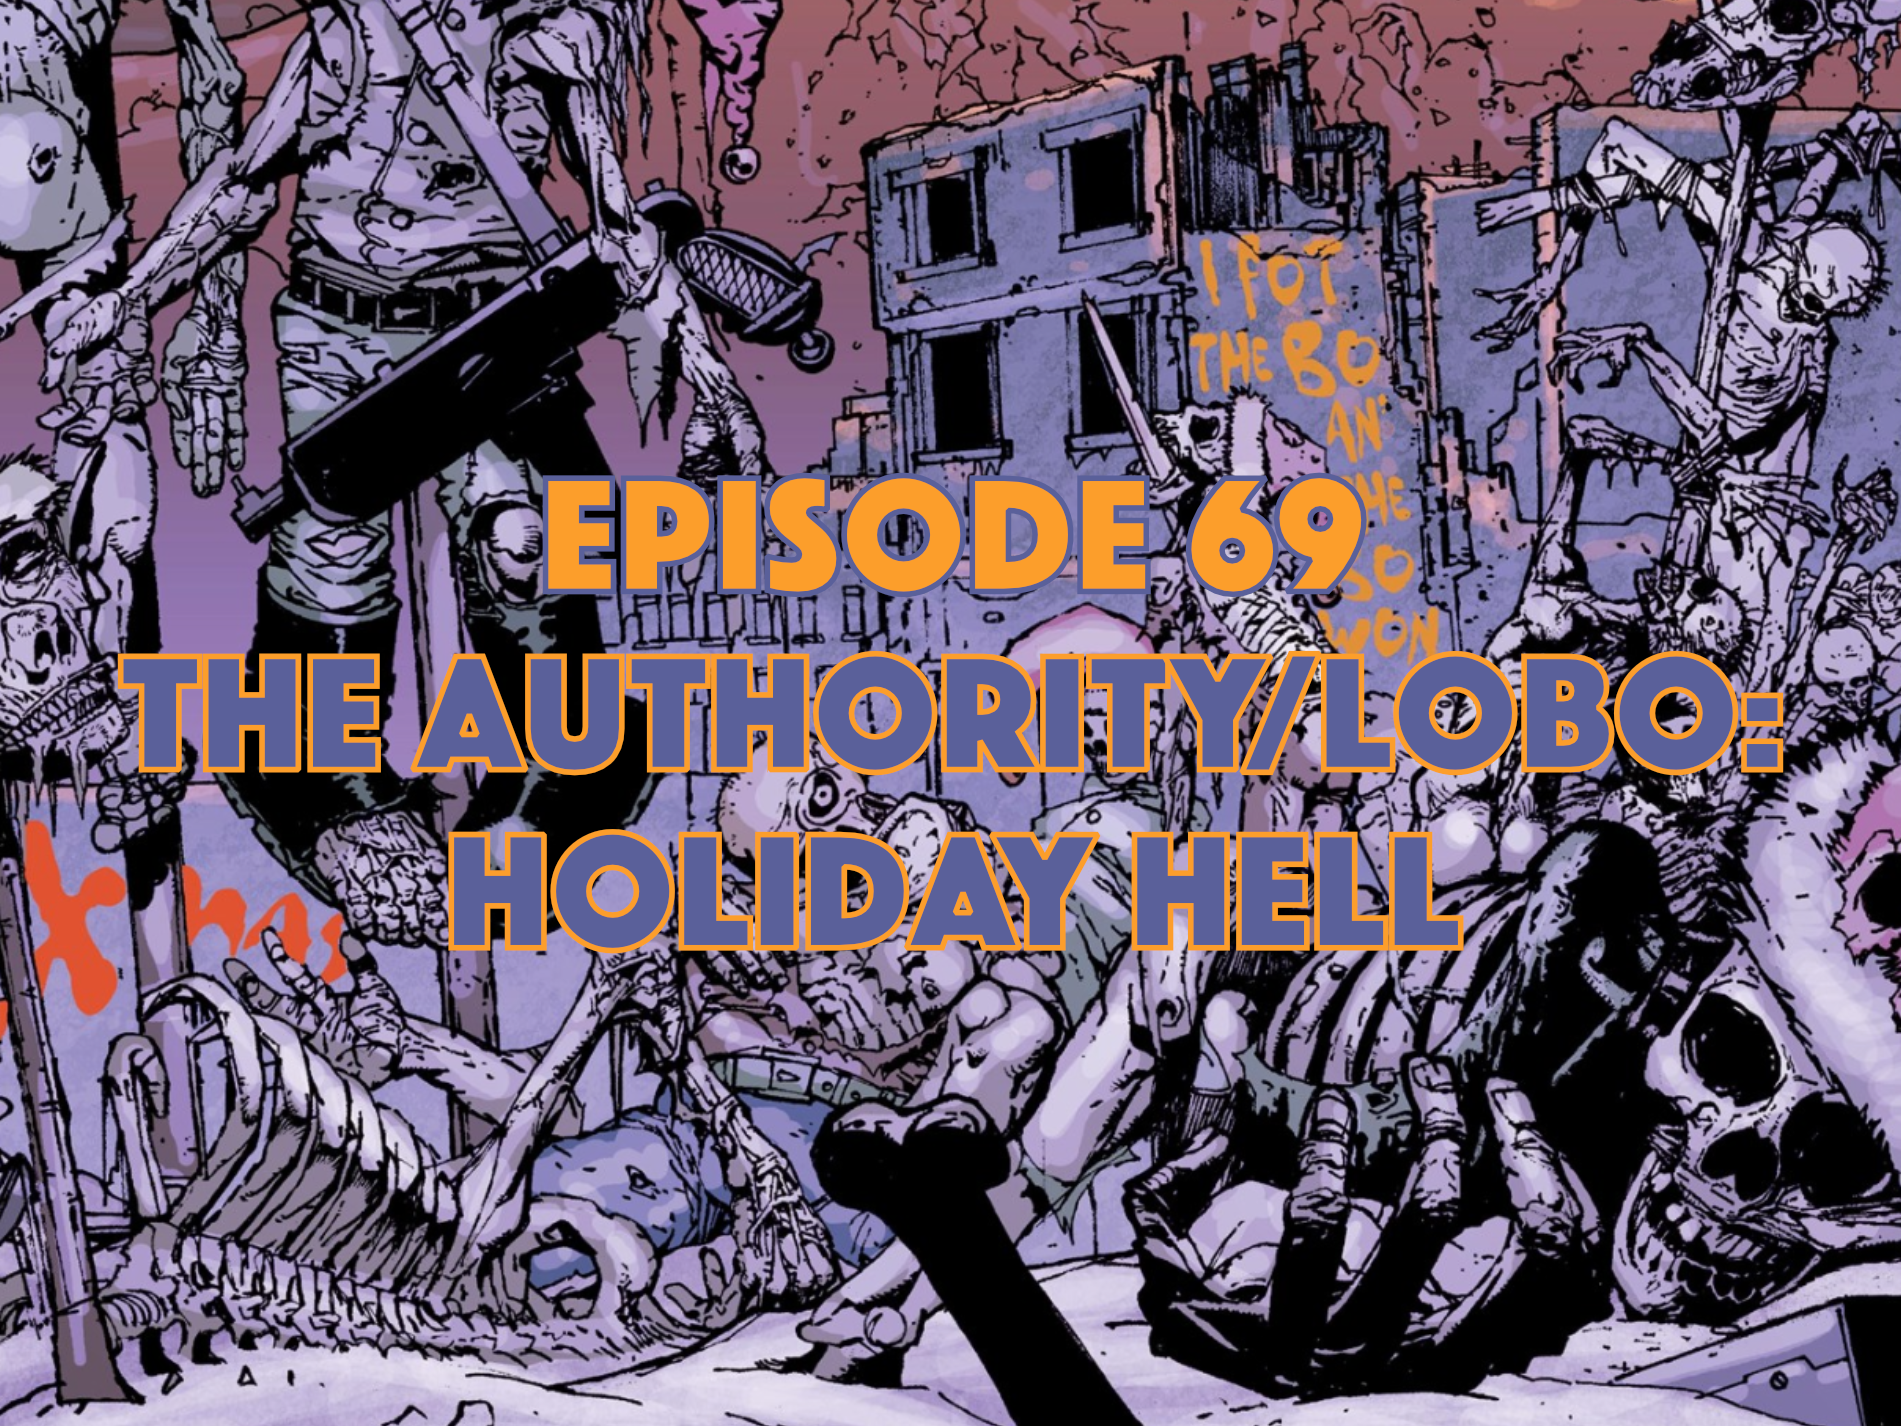 THE AUTHORITY, LOBO, HOLIDAY HELL, Graphic Novel Explorers Club, Comic Book Podcast, Graphic Novel Podcast